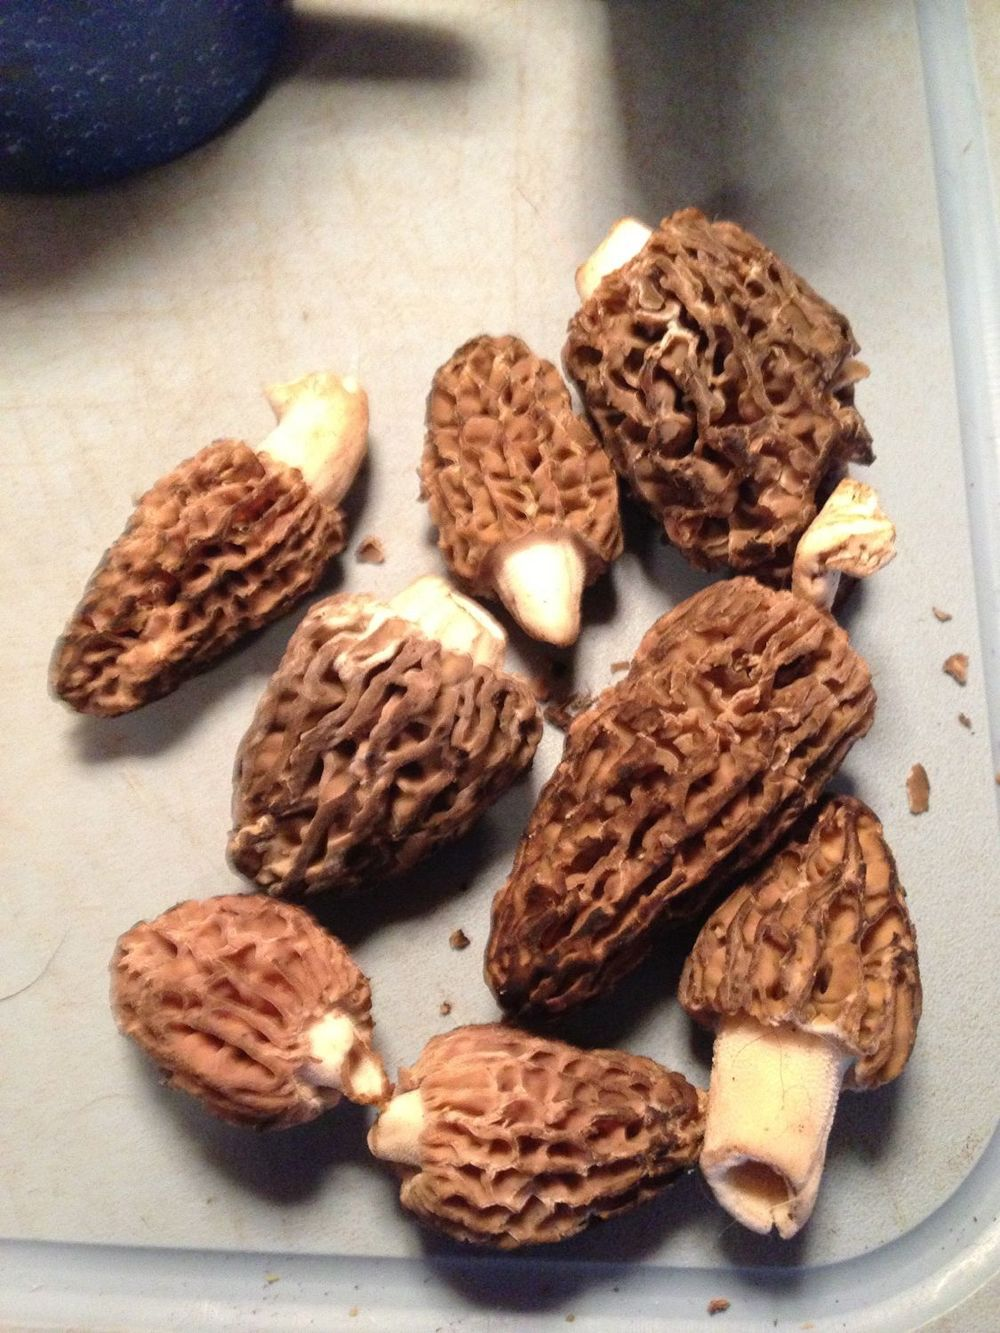 Some morel mushrooms. Yum!